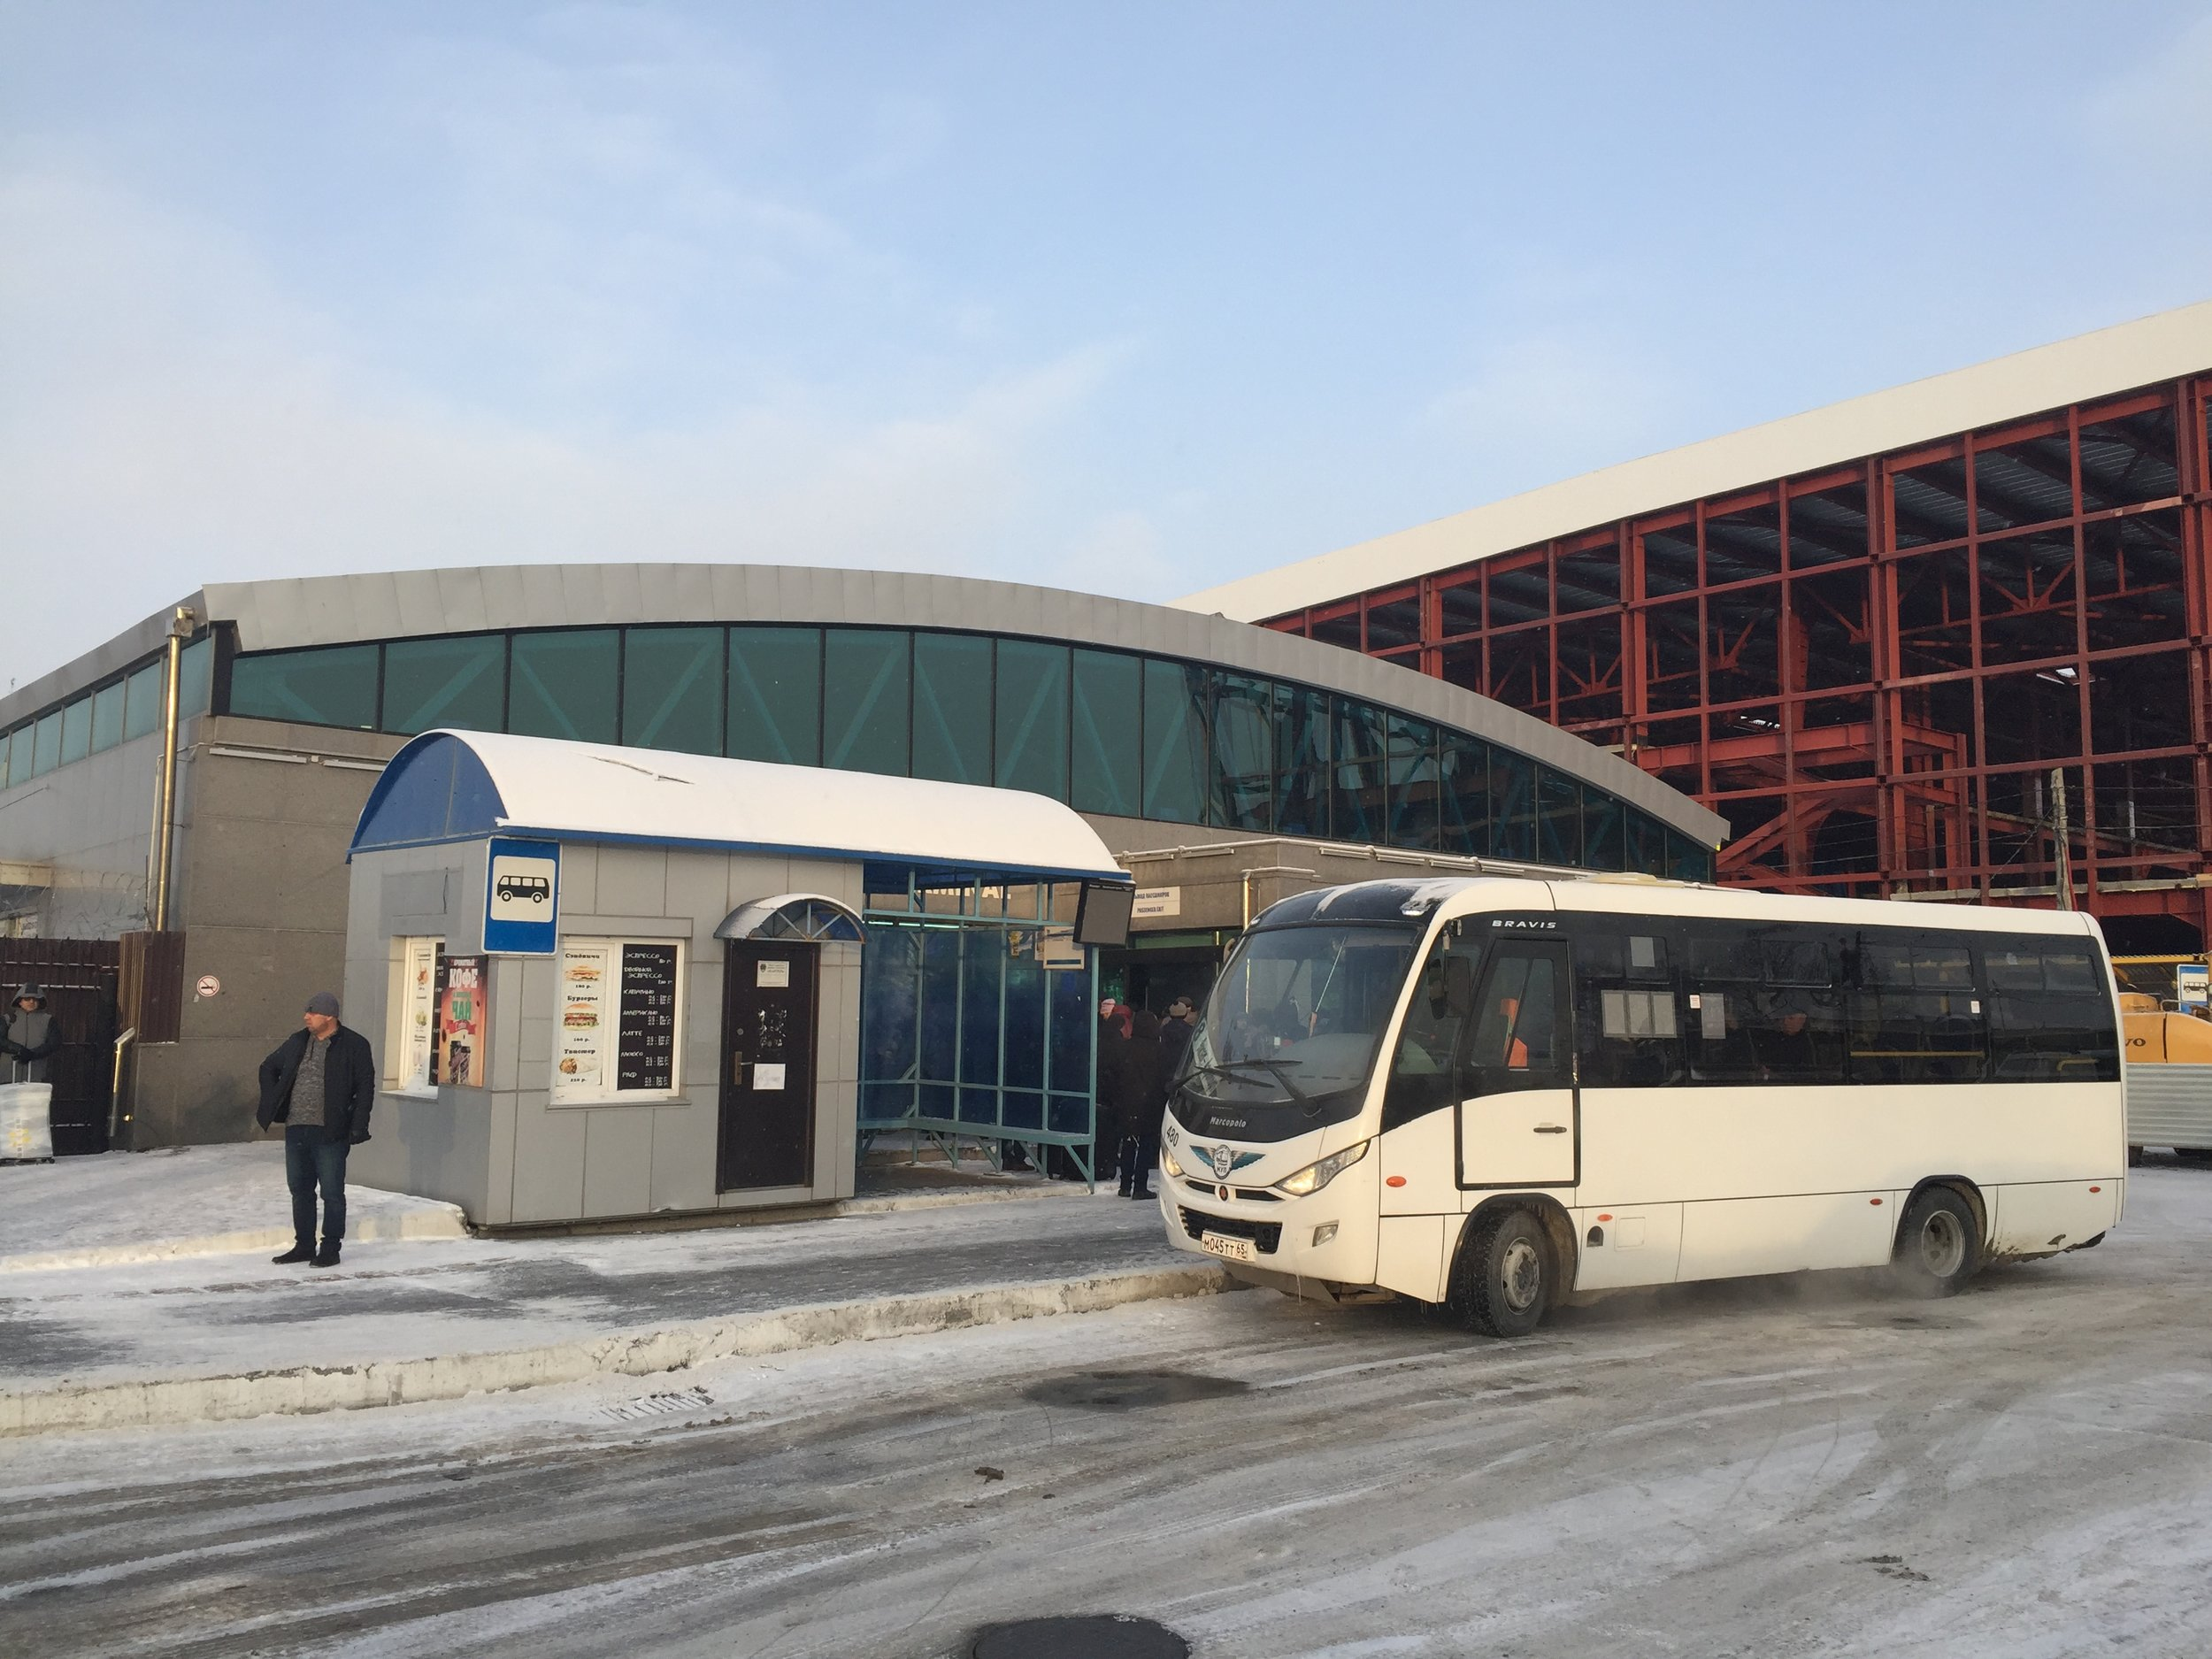 Arrivals area at Yuzhno-Sakhalinsk airport. The new terminal is taking shape next door.